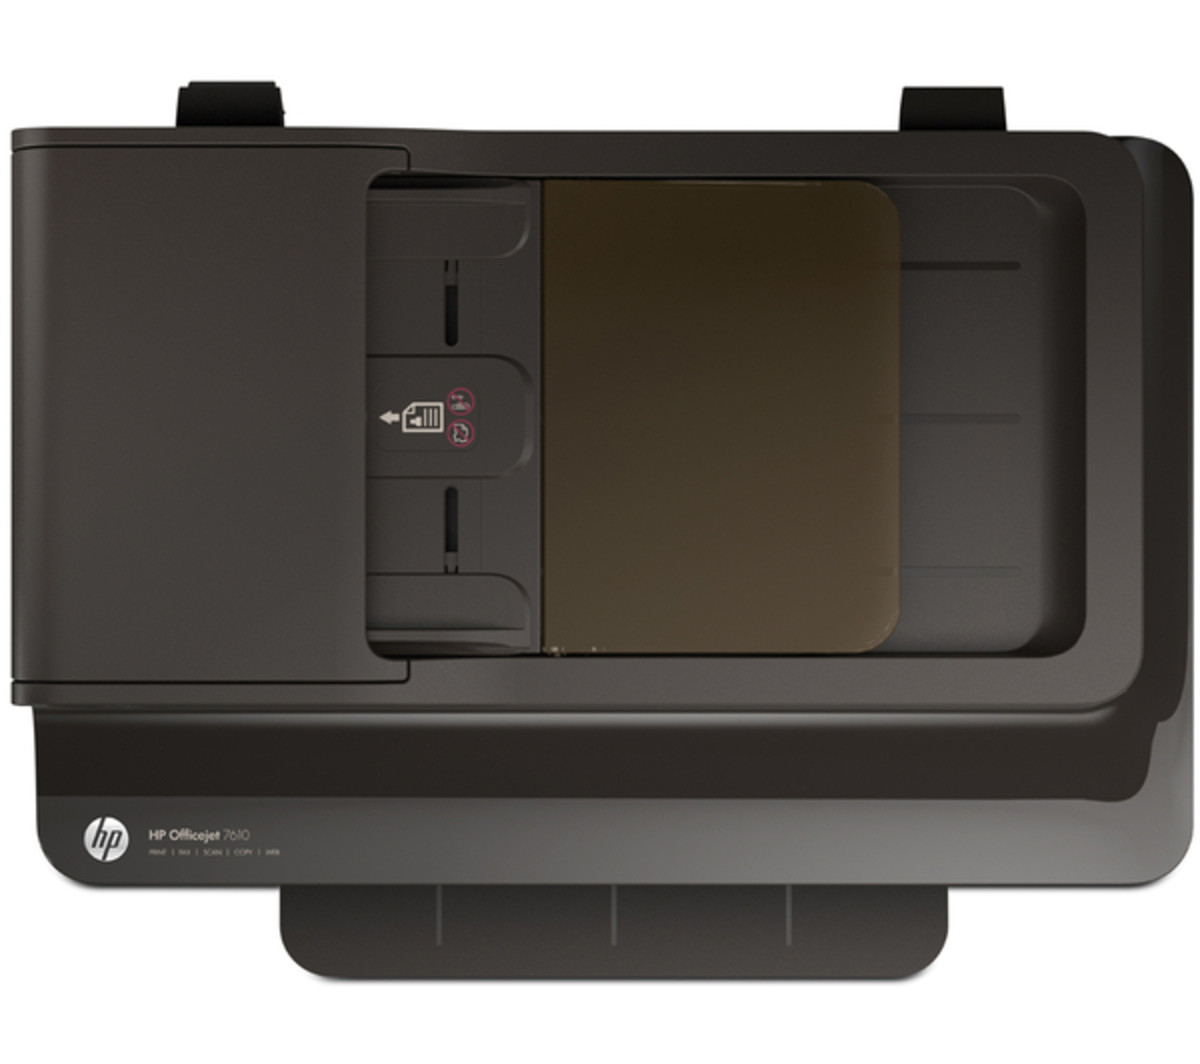 HP Officejet 7612 Inkjet Printer